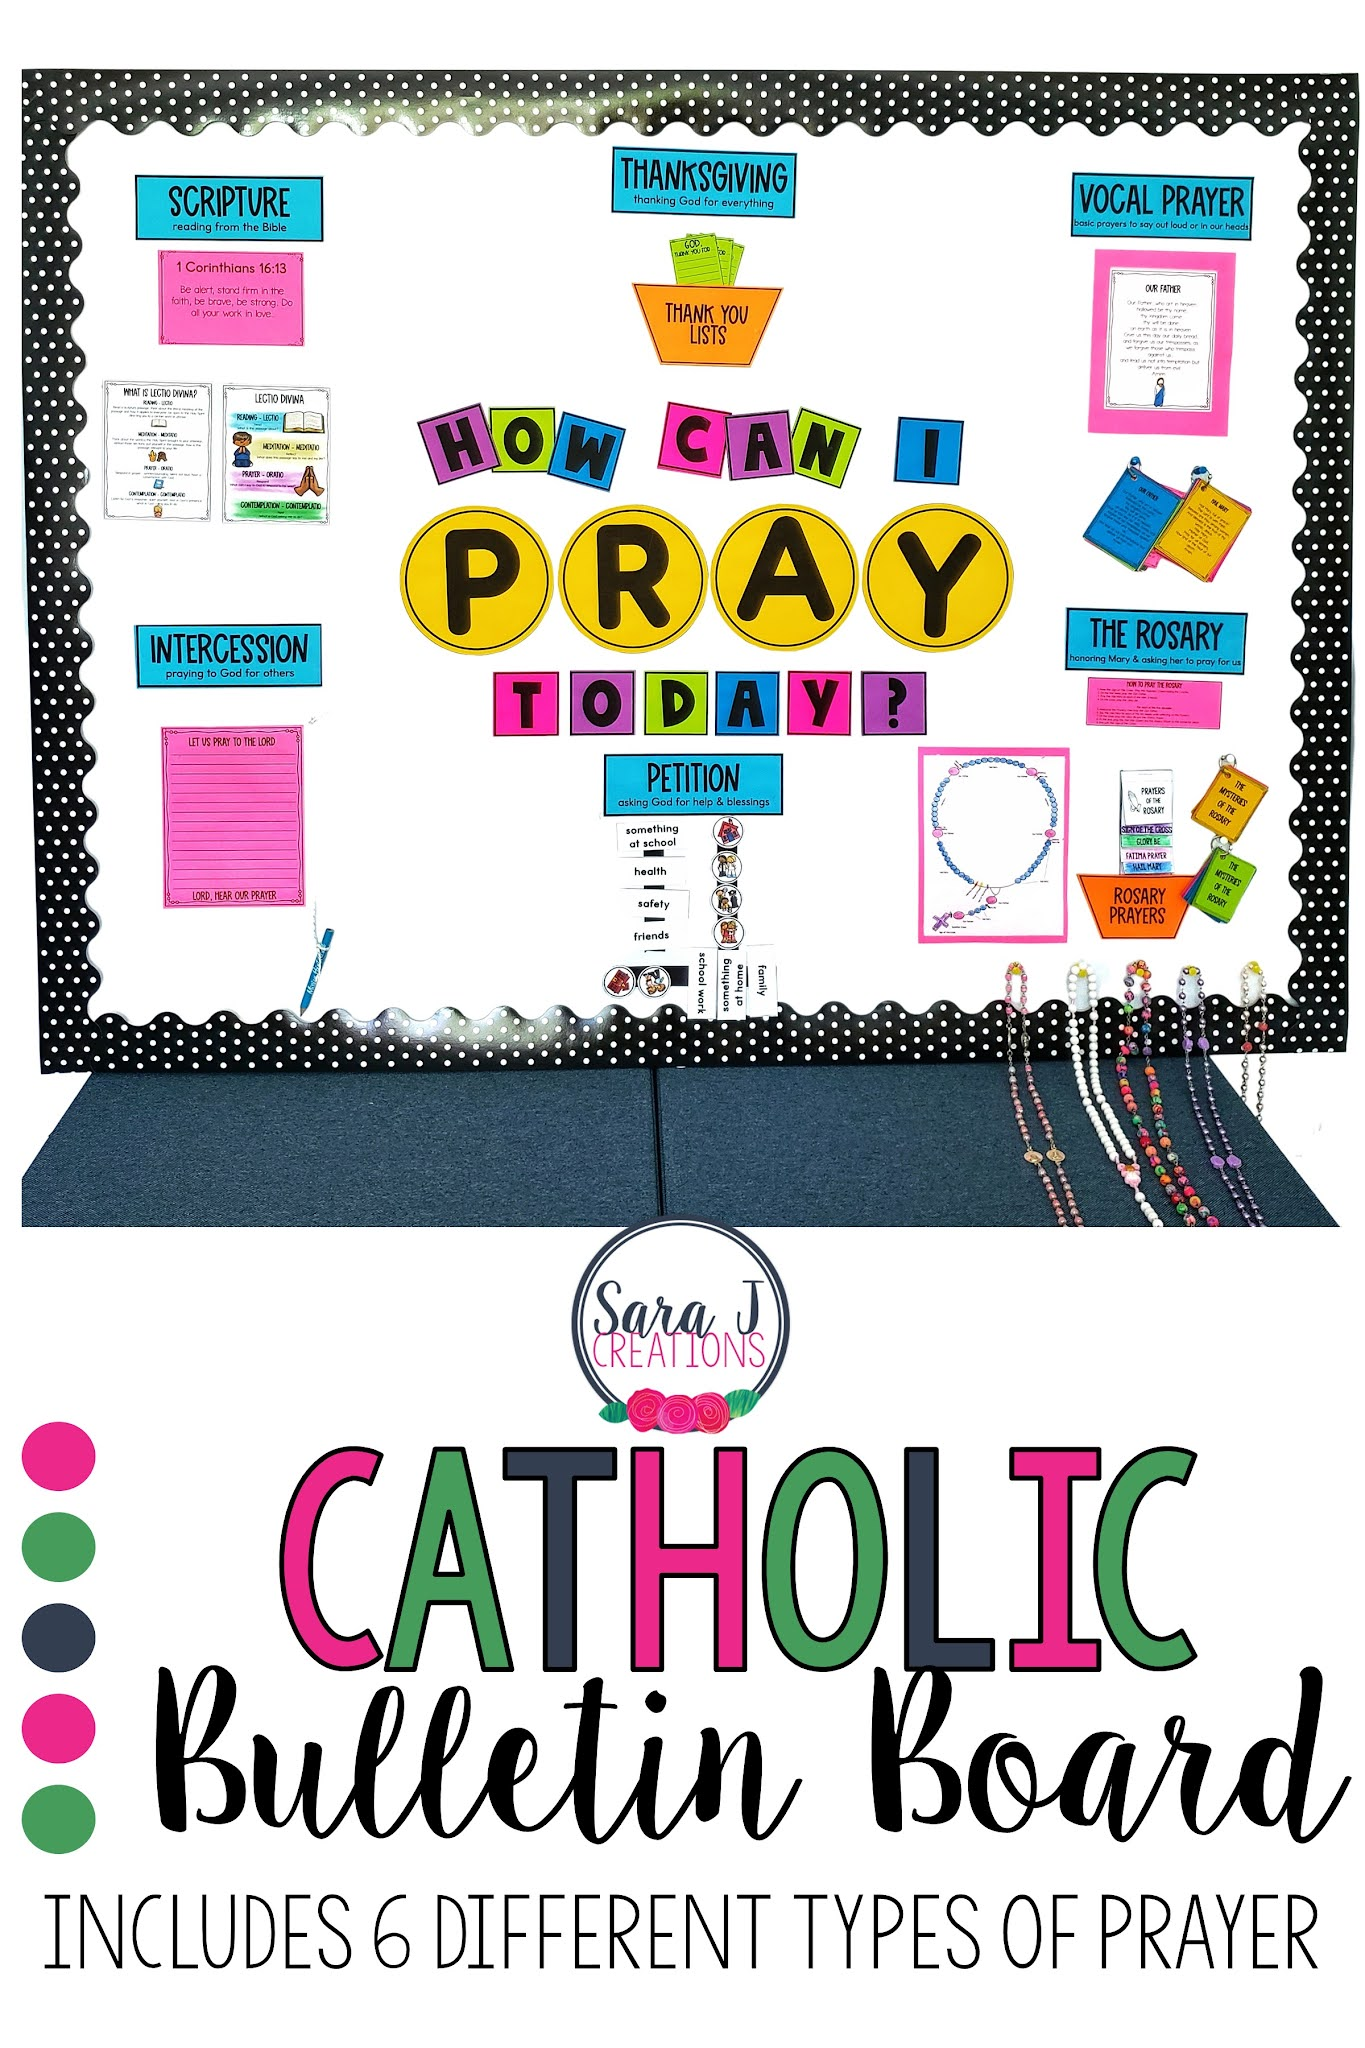 Teach your students 6 different ways to pray with this Catholic Prayers Bulletin Board. The perfect interactive bulletin board for Catholic classrooms and Sunday school rooms. Teach about petition, intercession, the Rosary, scripture, thanksgiving and vocal prayer.